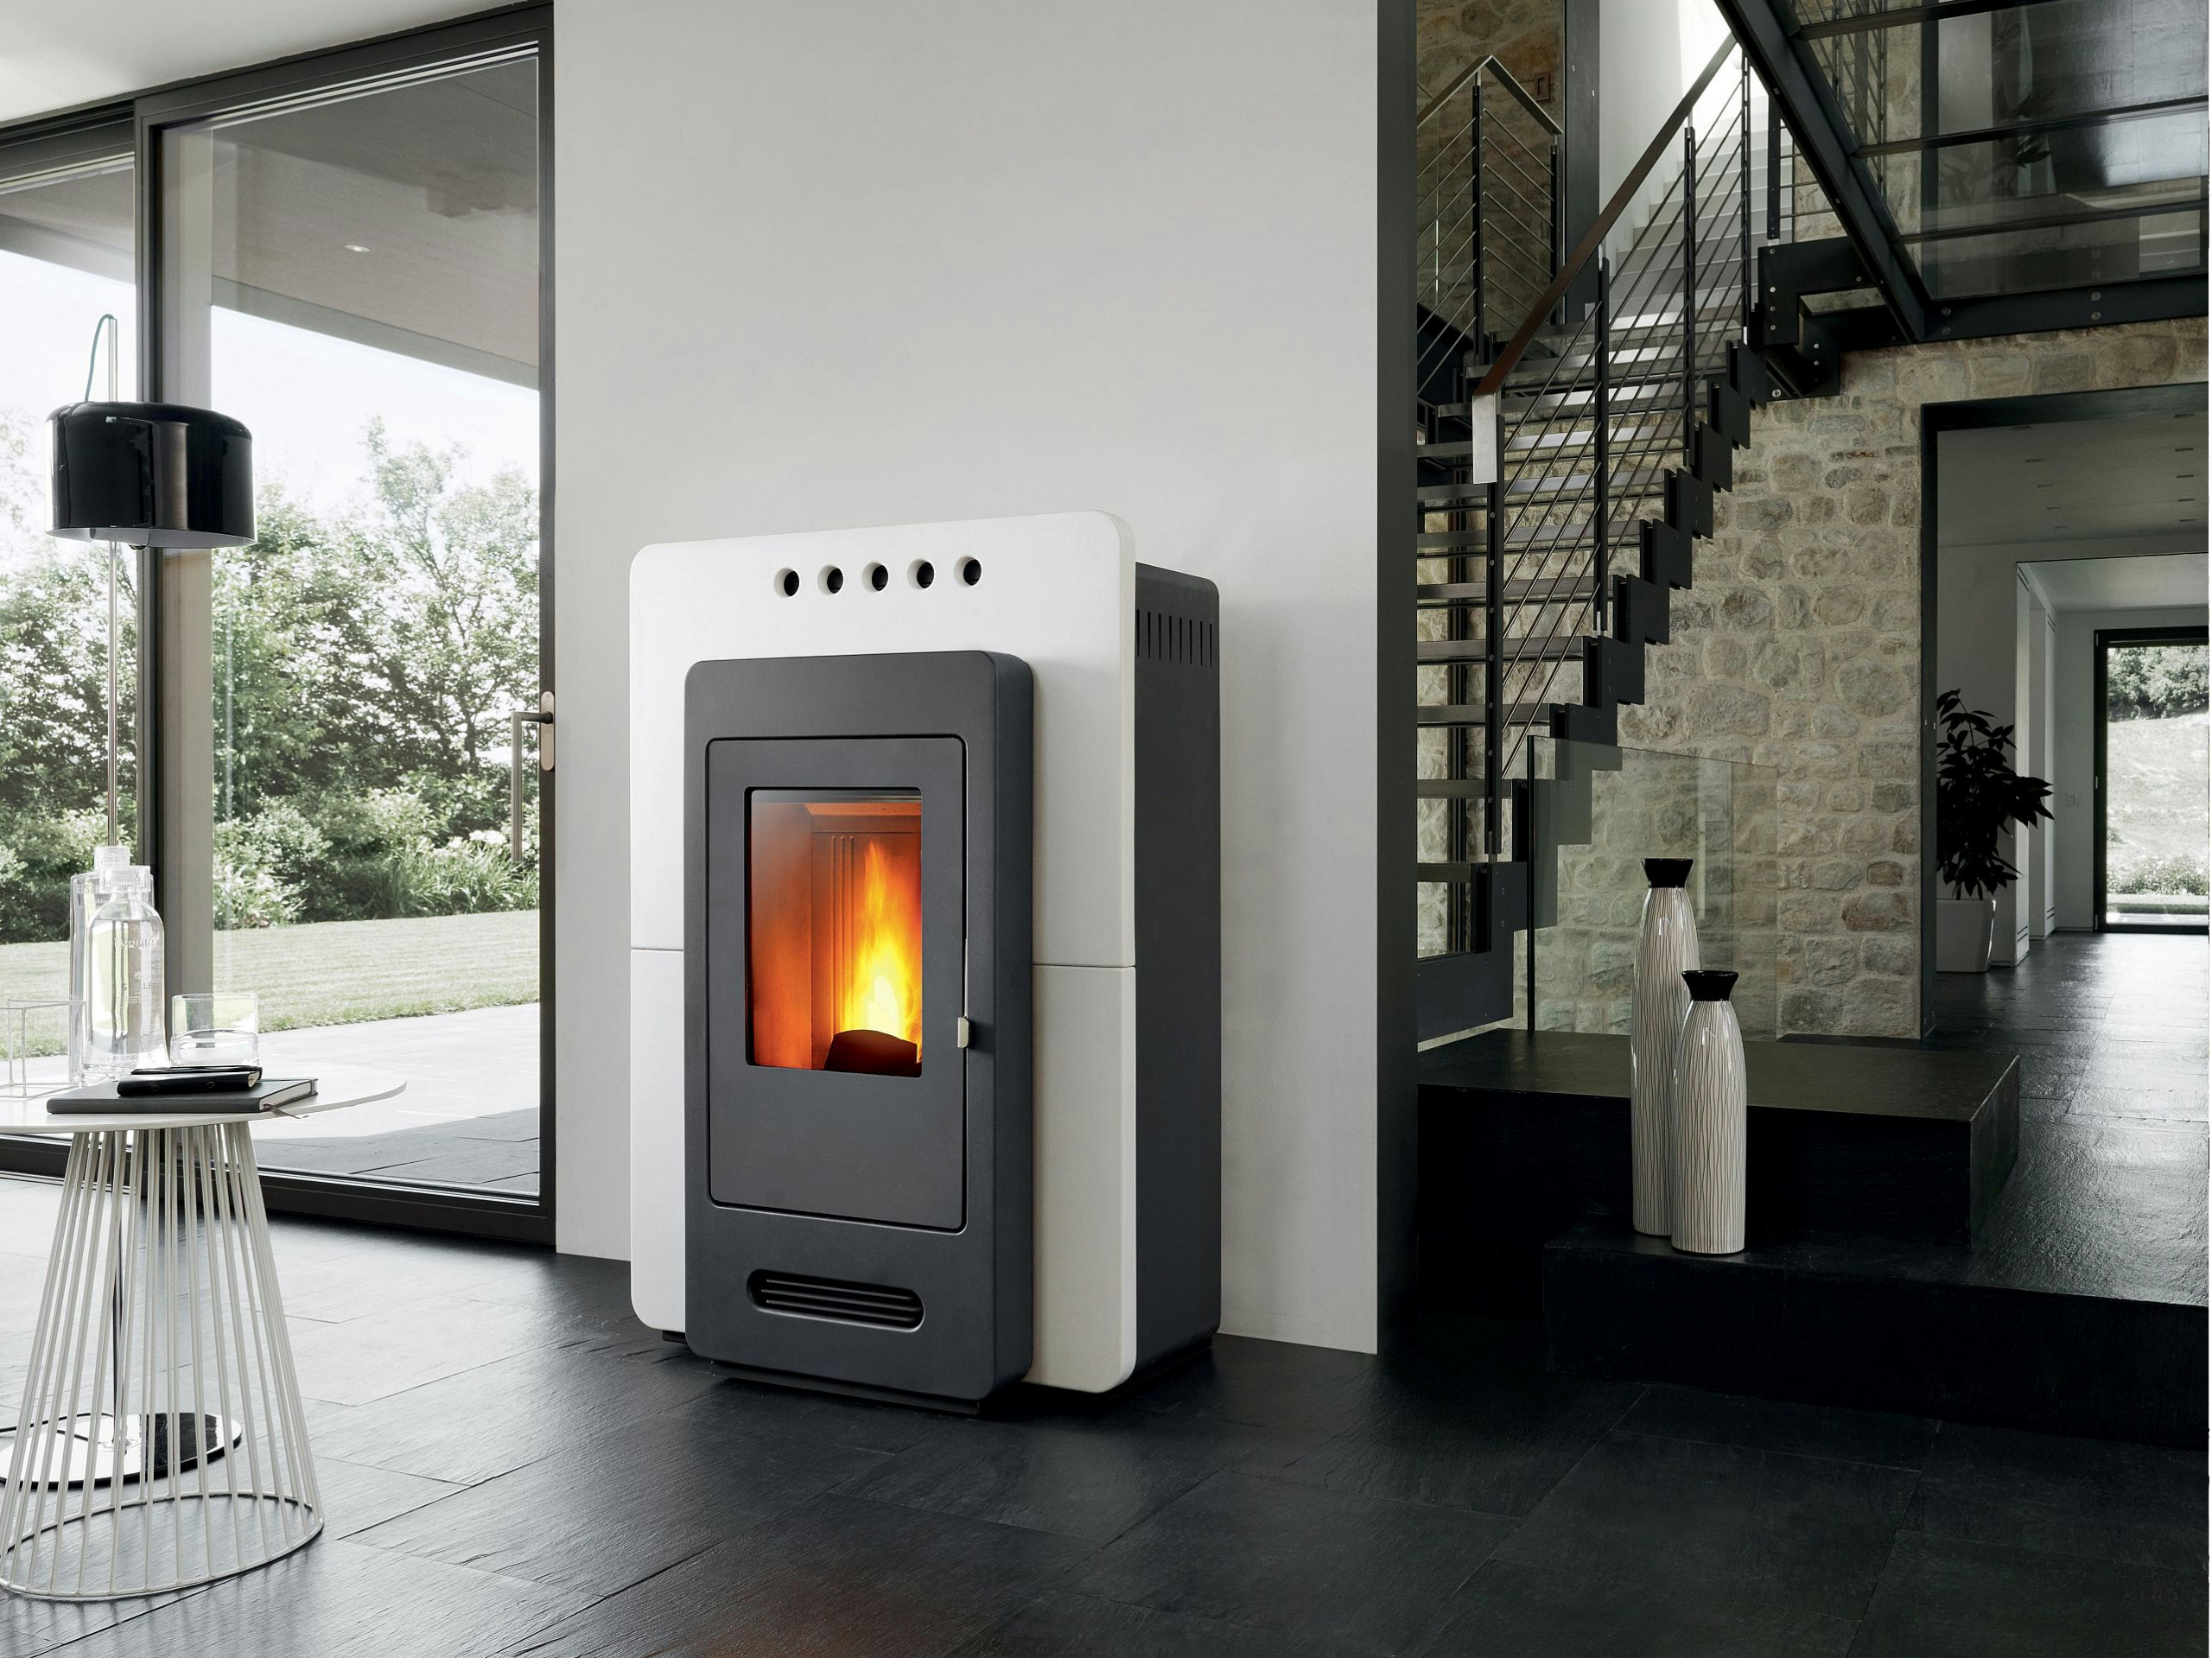 p937 pellet stove by piazzetta. Black Bedroom Furniture Sets. Home Design Ideas